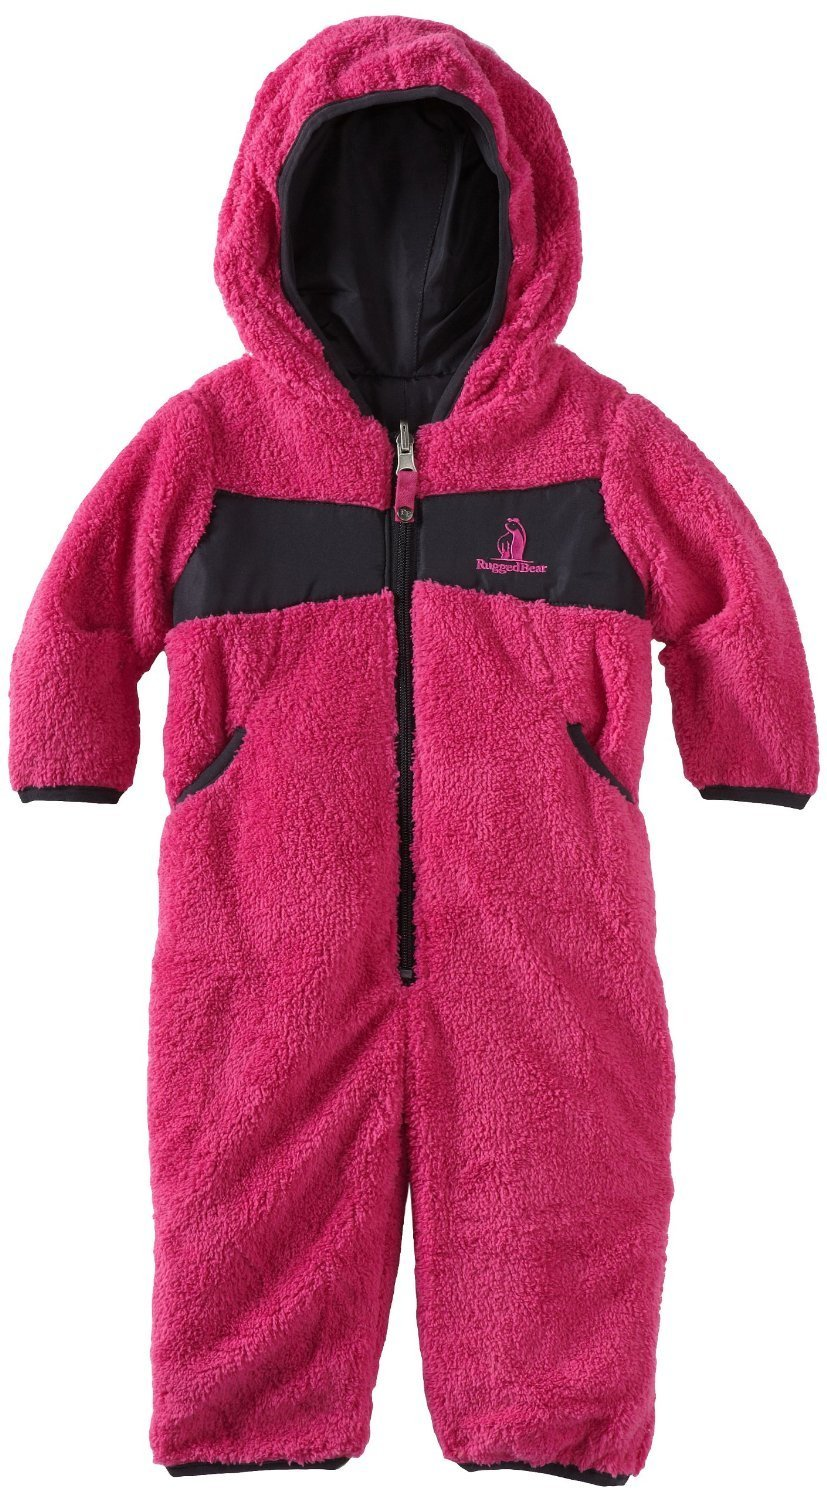 Rugged Bear Baby-Girls Infant Solid Pram Jacket/Coat Snowsuit Fuchsia 12M18M24M at Sears.com